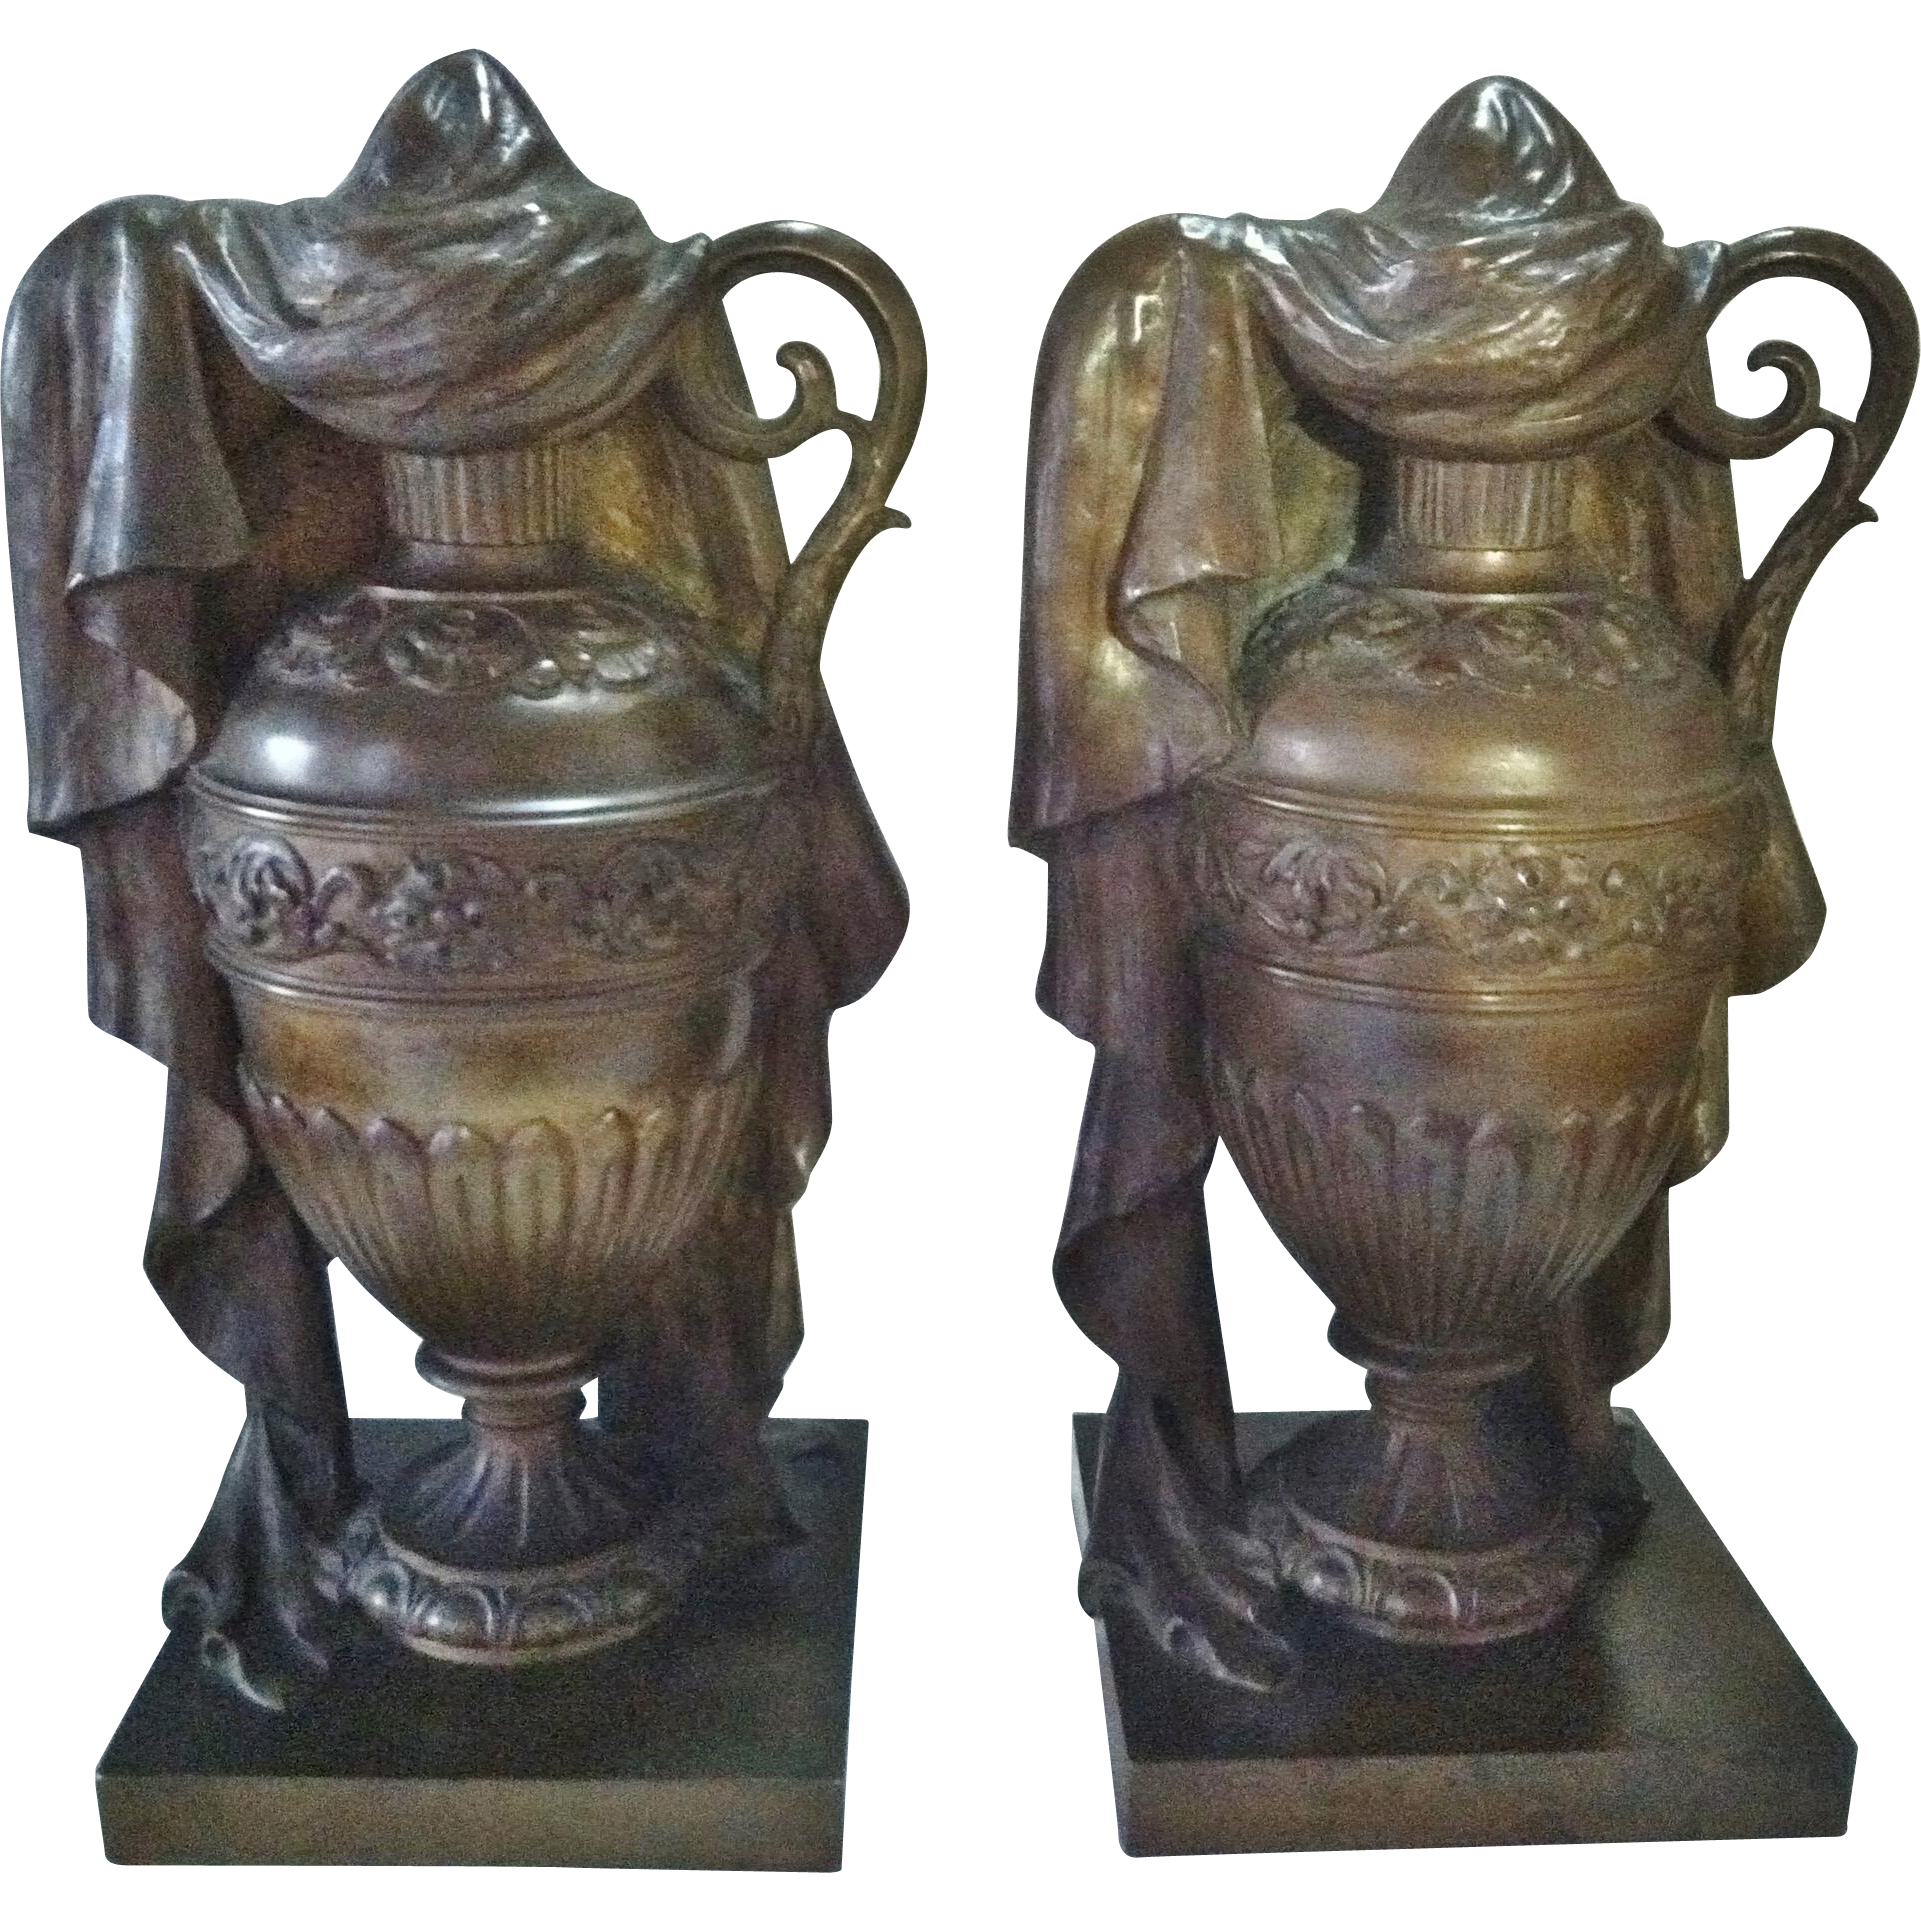 Antique Cremation Urns, 19th Century, Pair of Solid Bronze Draped Classical Form Urns